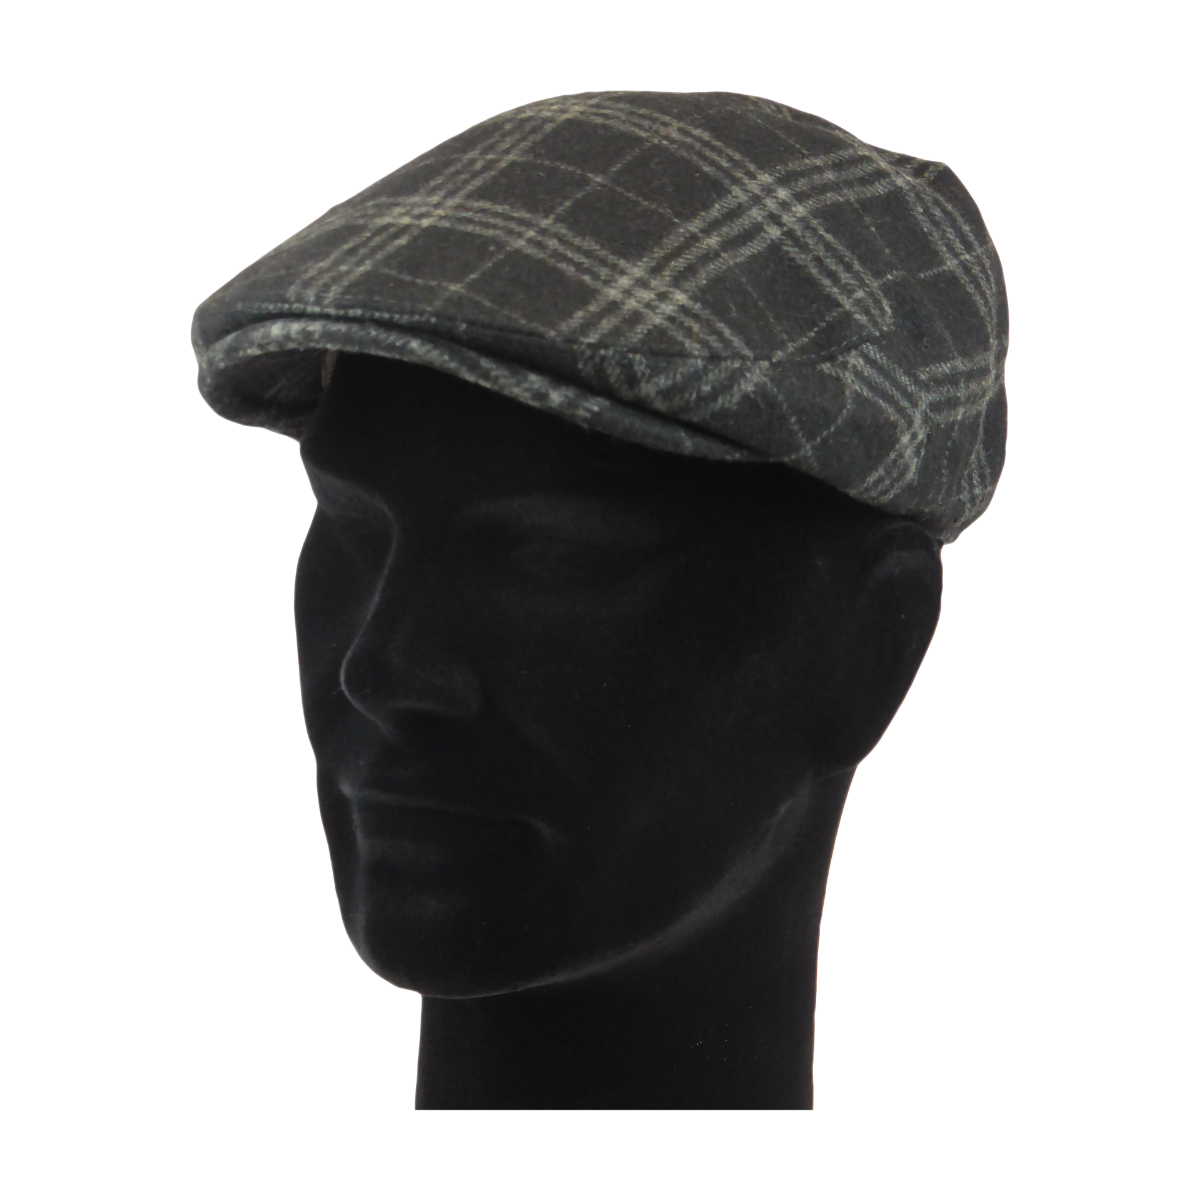 King Cobra Store flat cap color black grey checked tartan platte pet modern shape hat 1900 1910 timeless Brixton Oslo cap Barts Stetson Dickies Ted Baker Profuomo Texas flat cap Tucson Hooligan Peaky Blinders Gatsby all seasons autumn winter spring basic streetwear rockabilly tattoo vintage casual wool tweed plain tartan striped check checked pattern herringbone visgraat motief patroon size 55 56 57 58 59 60